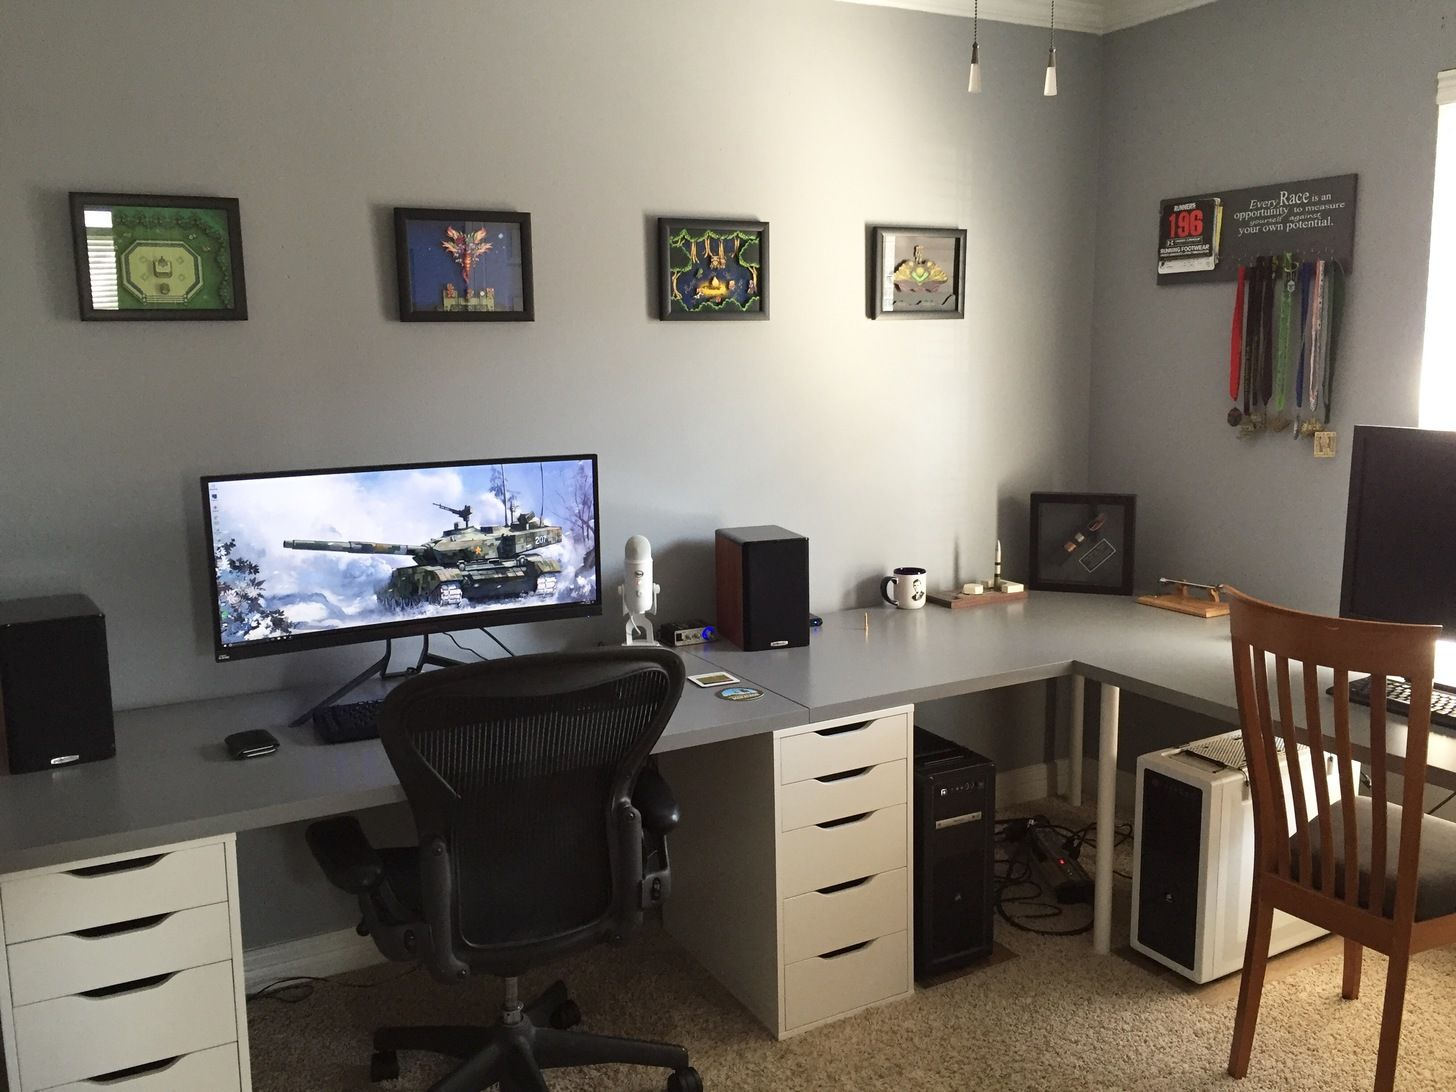 New office setup, just need to address cables.